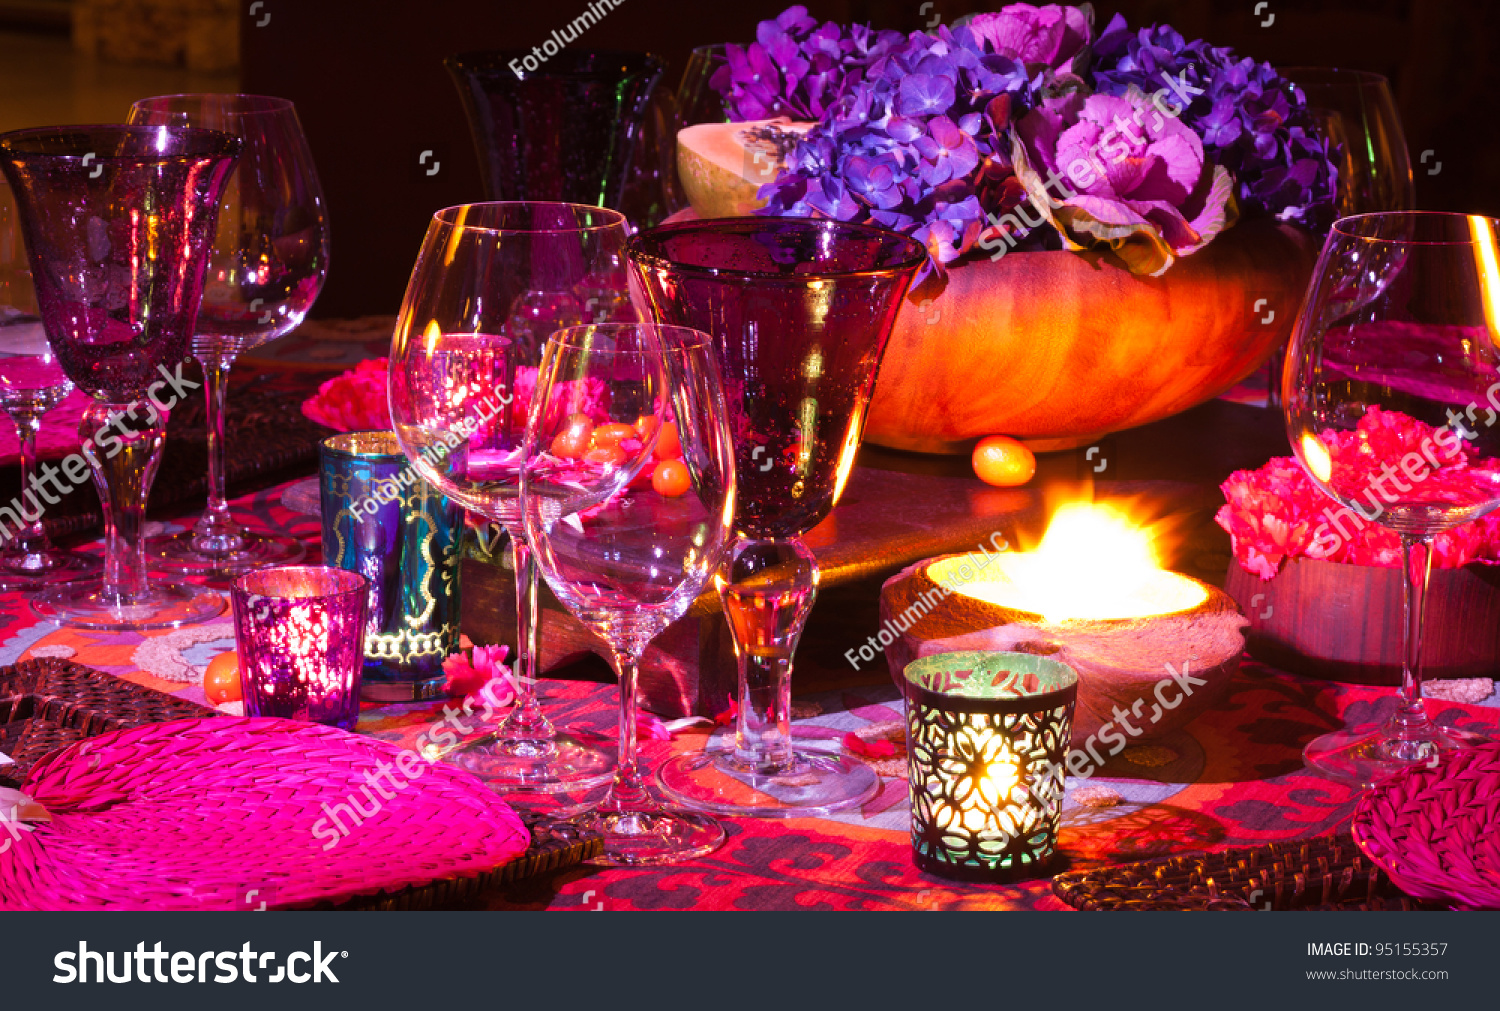 Elegant dinner table setting - Colorful Elegant Dinner Table Setting